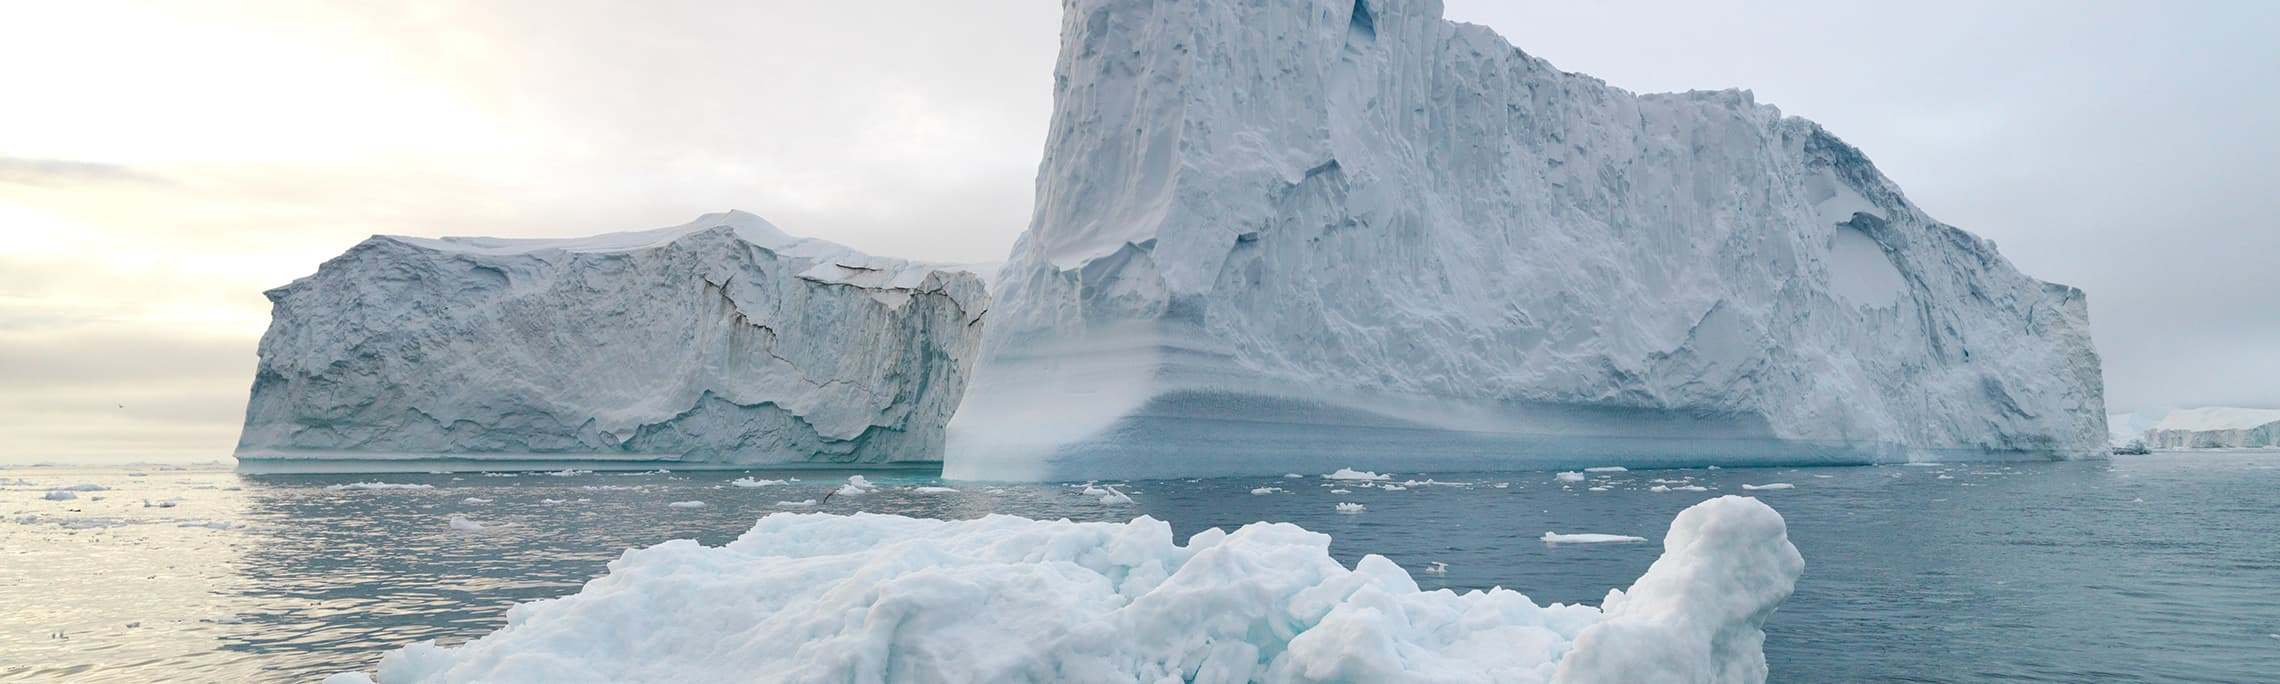 Scientists Utilize Satellite Technology to Track Icebergs in The Arctic Thumbnail